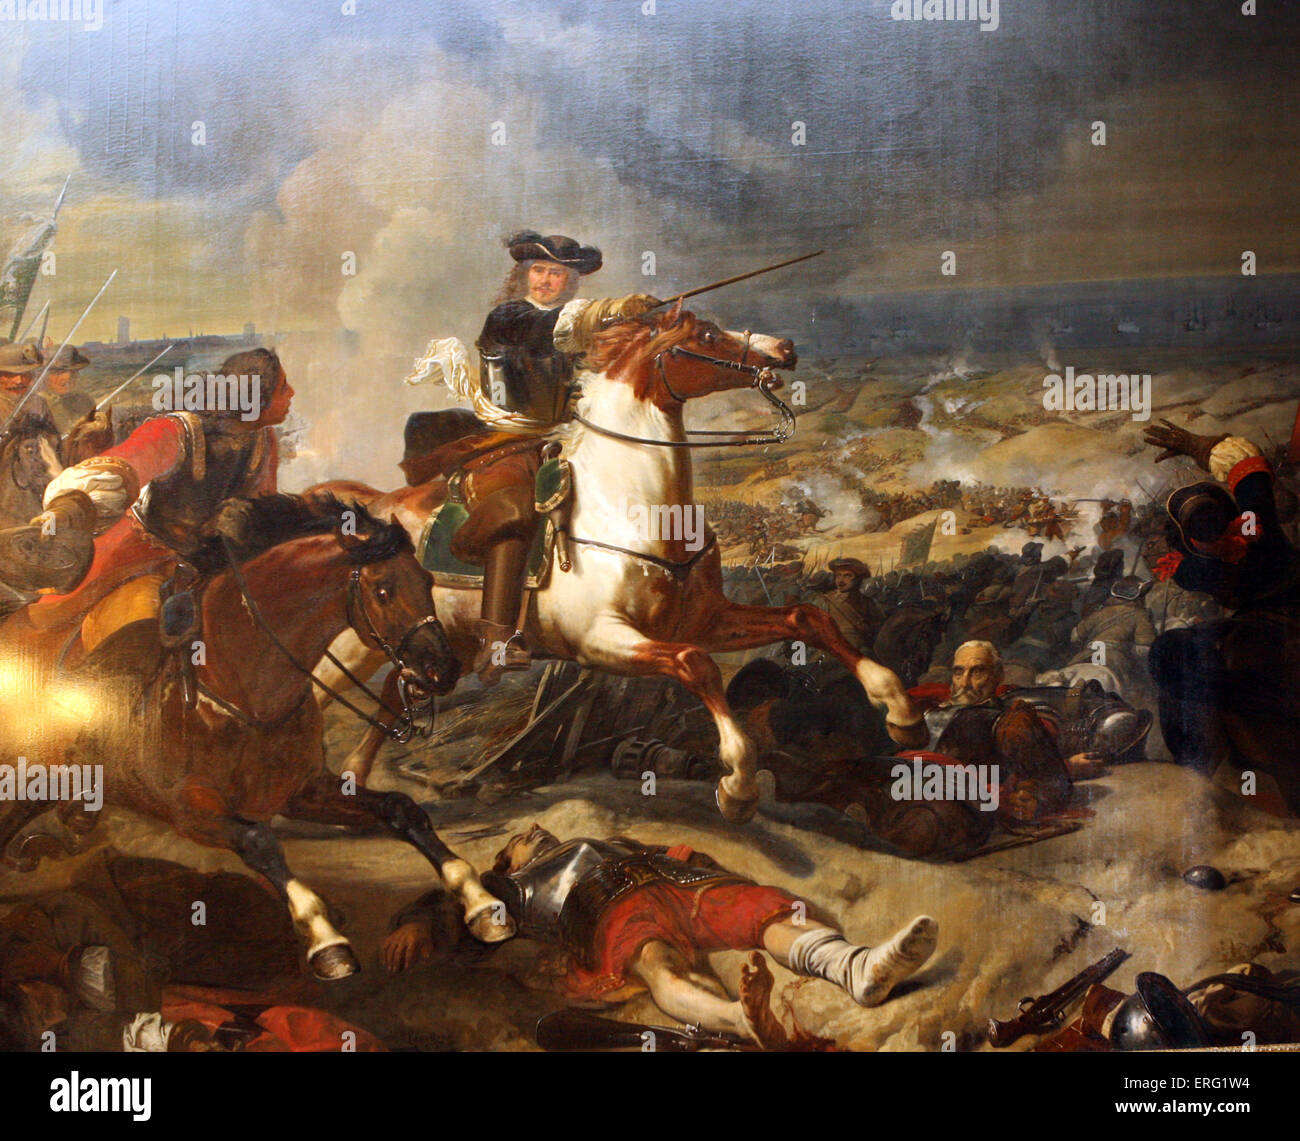 Siege of  Dunkirk - Battle of the dunes. won by the Marshall of Turenne 14th june 1658 - Stock Image